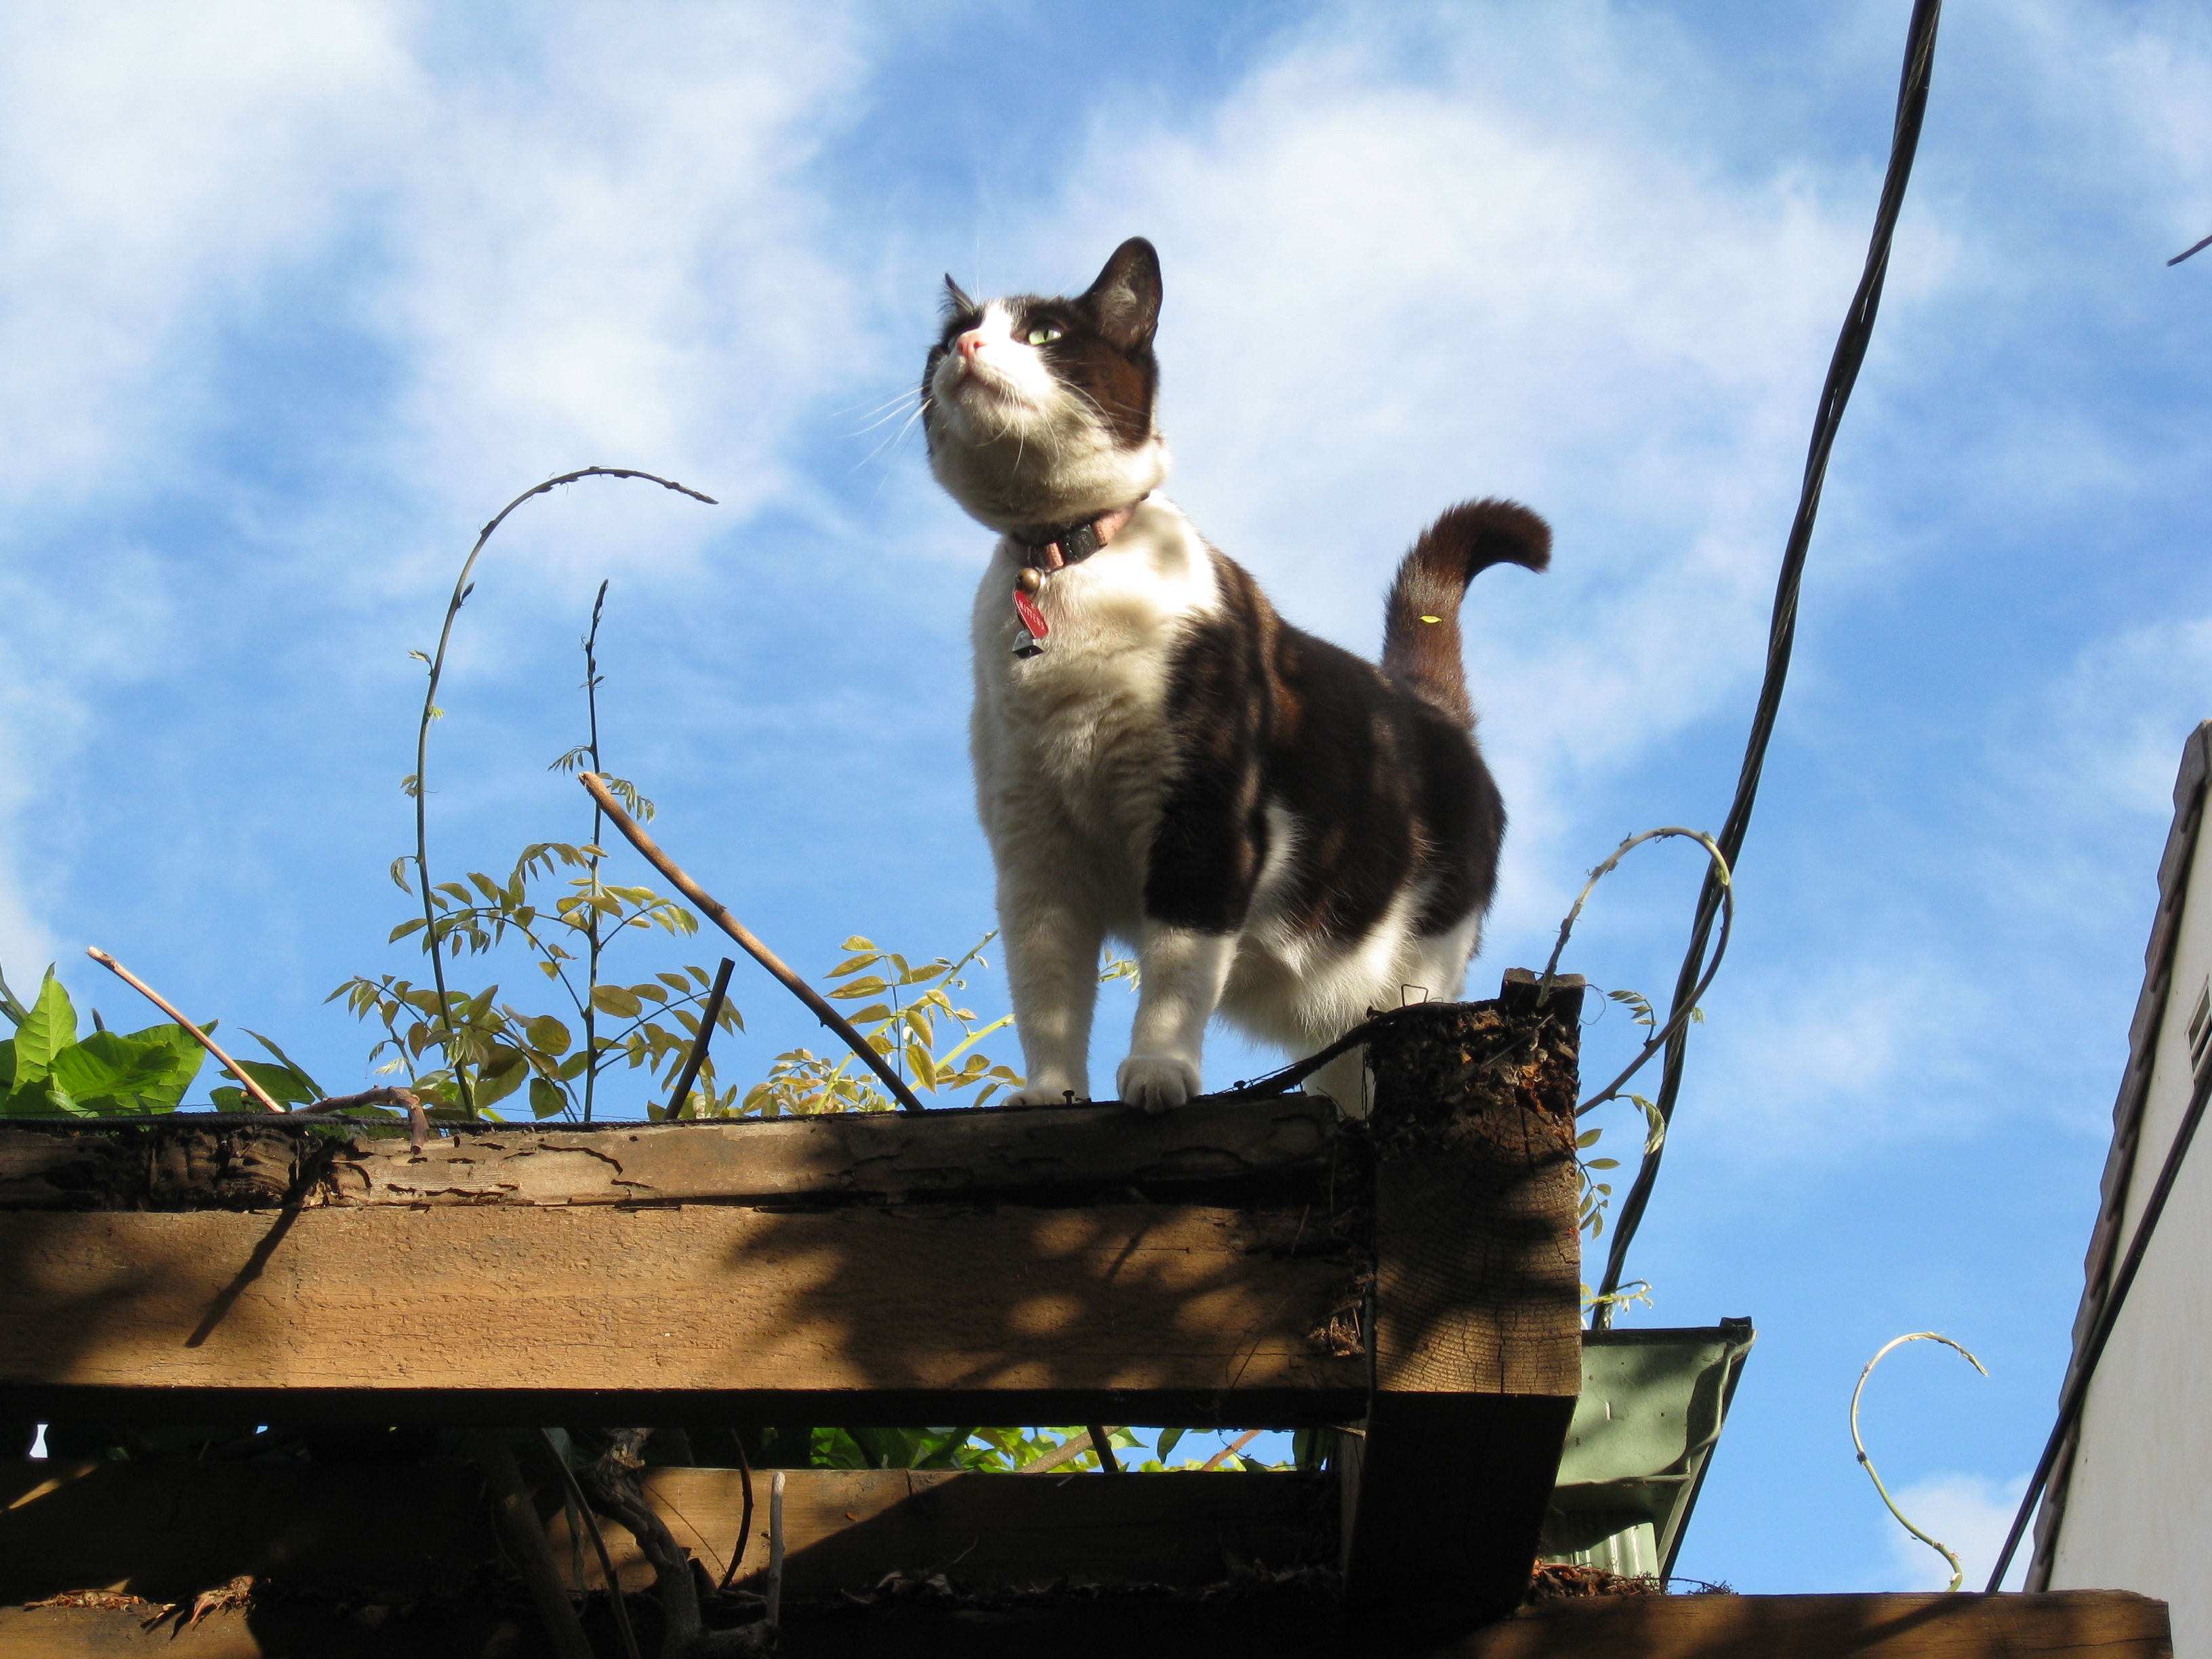 Mittens the supercat protects the garden from vermin.